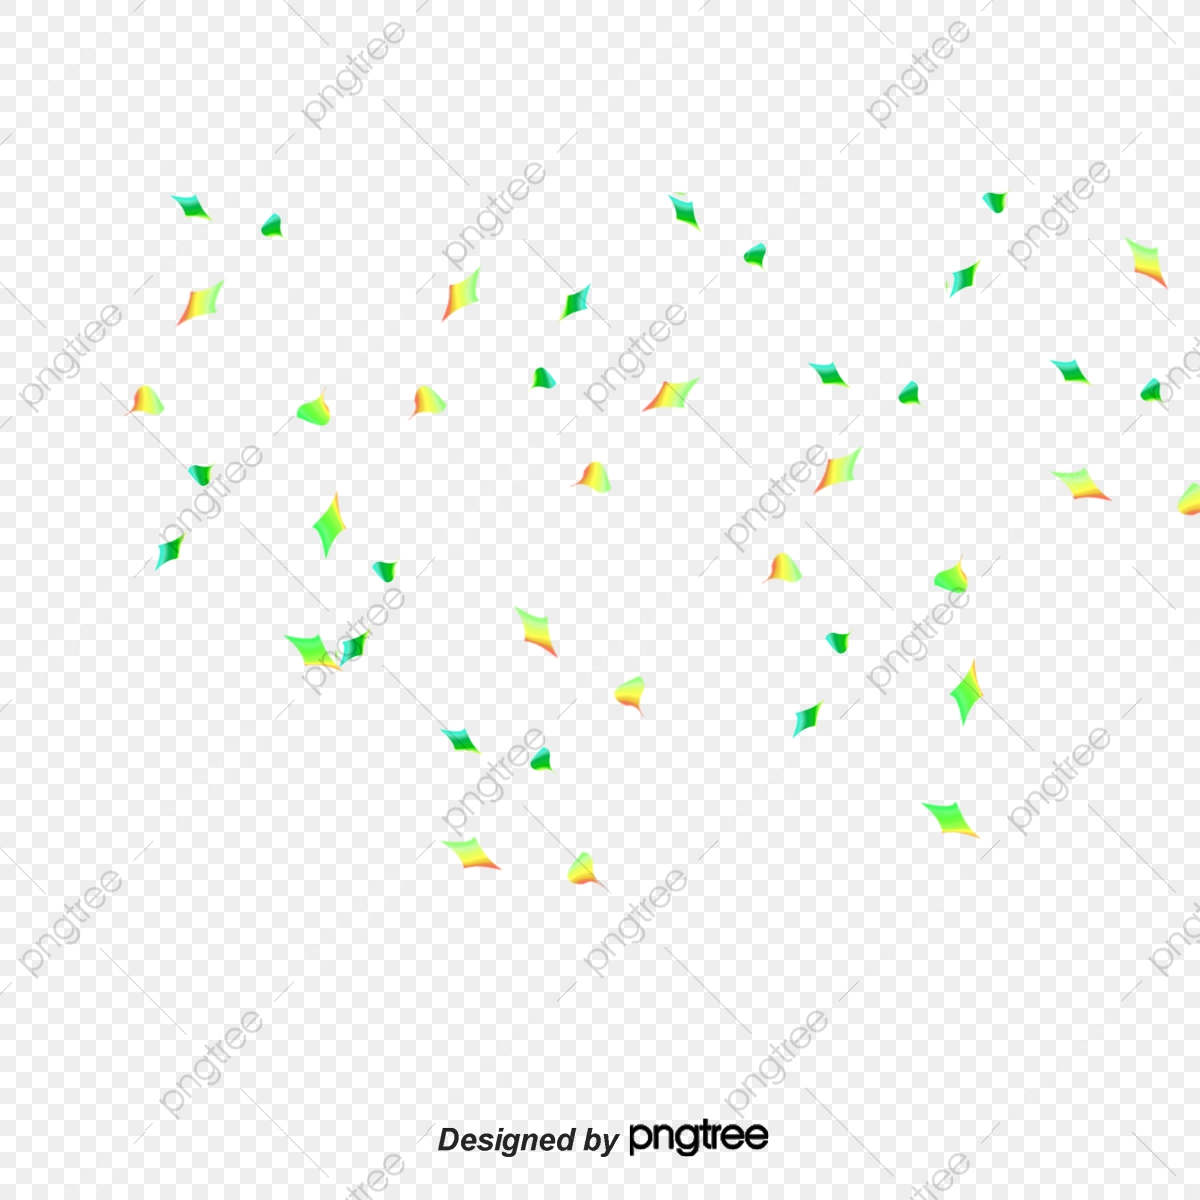 Clipart paper color paper. Falling down material png